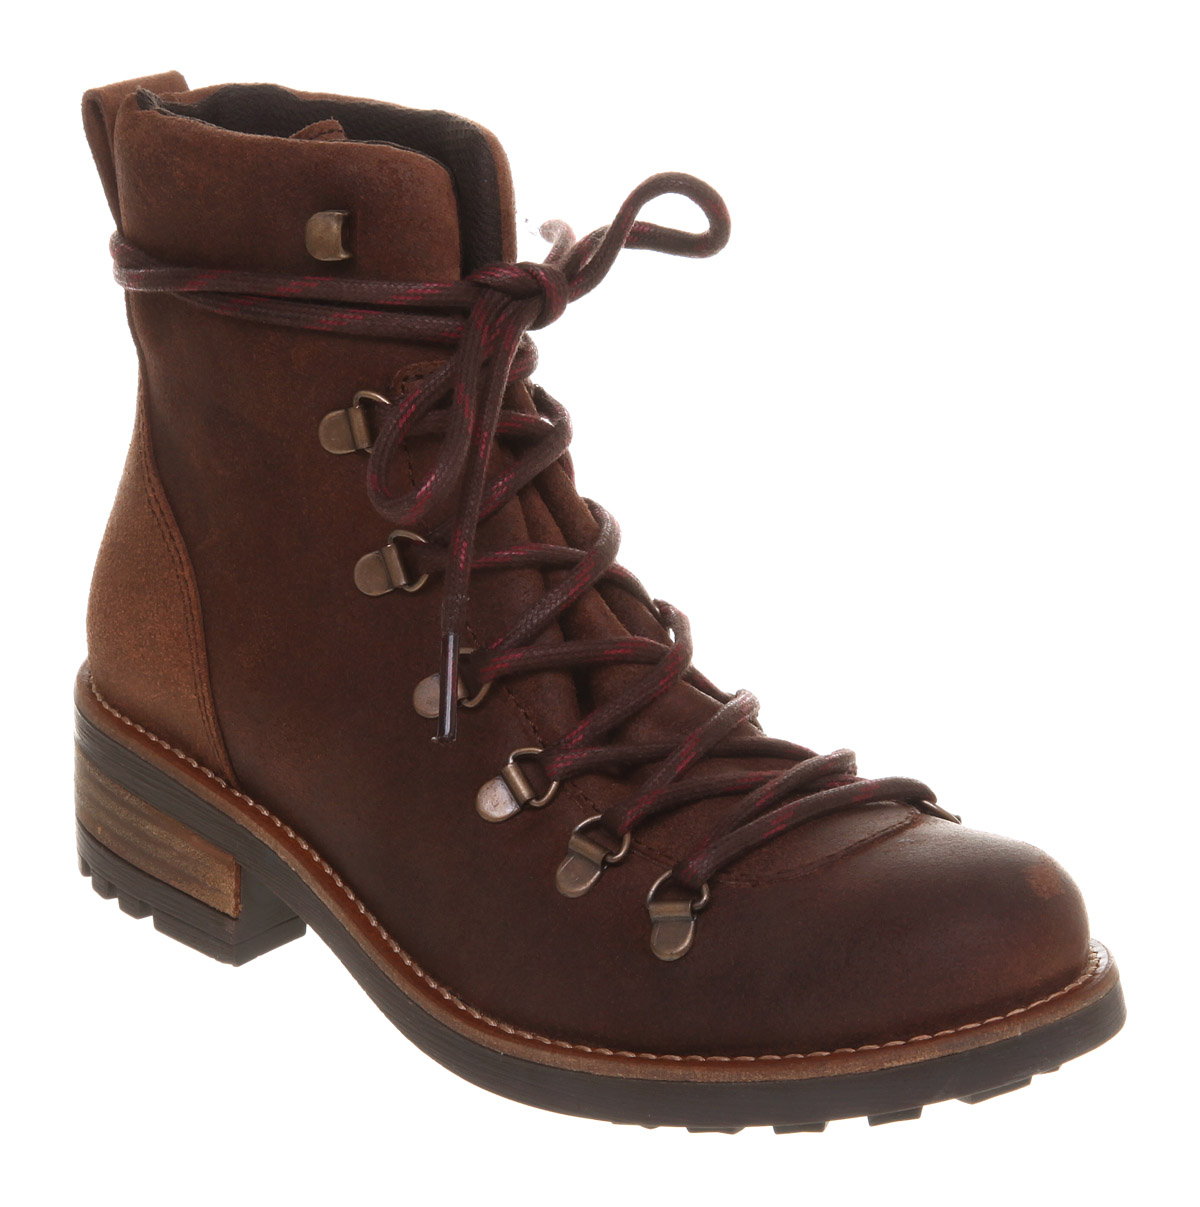 Innovative Fullgrain Leather  Boots Include A Waterproof Lining, But With EVent They Retain Breathability Boots Come In Brown, But For That Splash Of Color Consider Midnight Blue Retail Price Is $16499 Merrell Womens Moab LowProfile Hikers For A